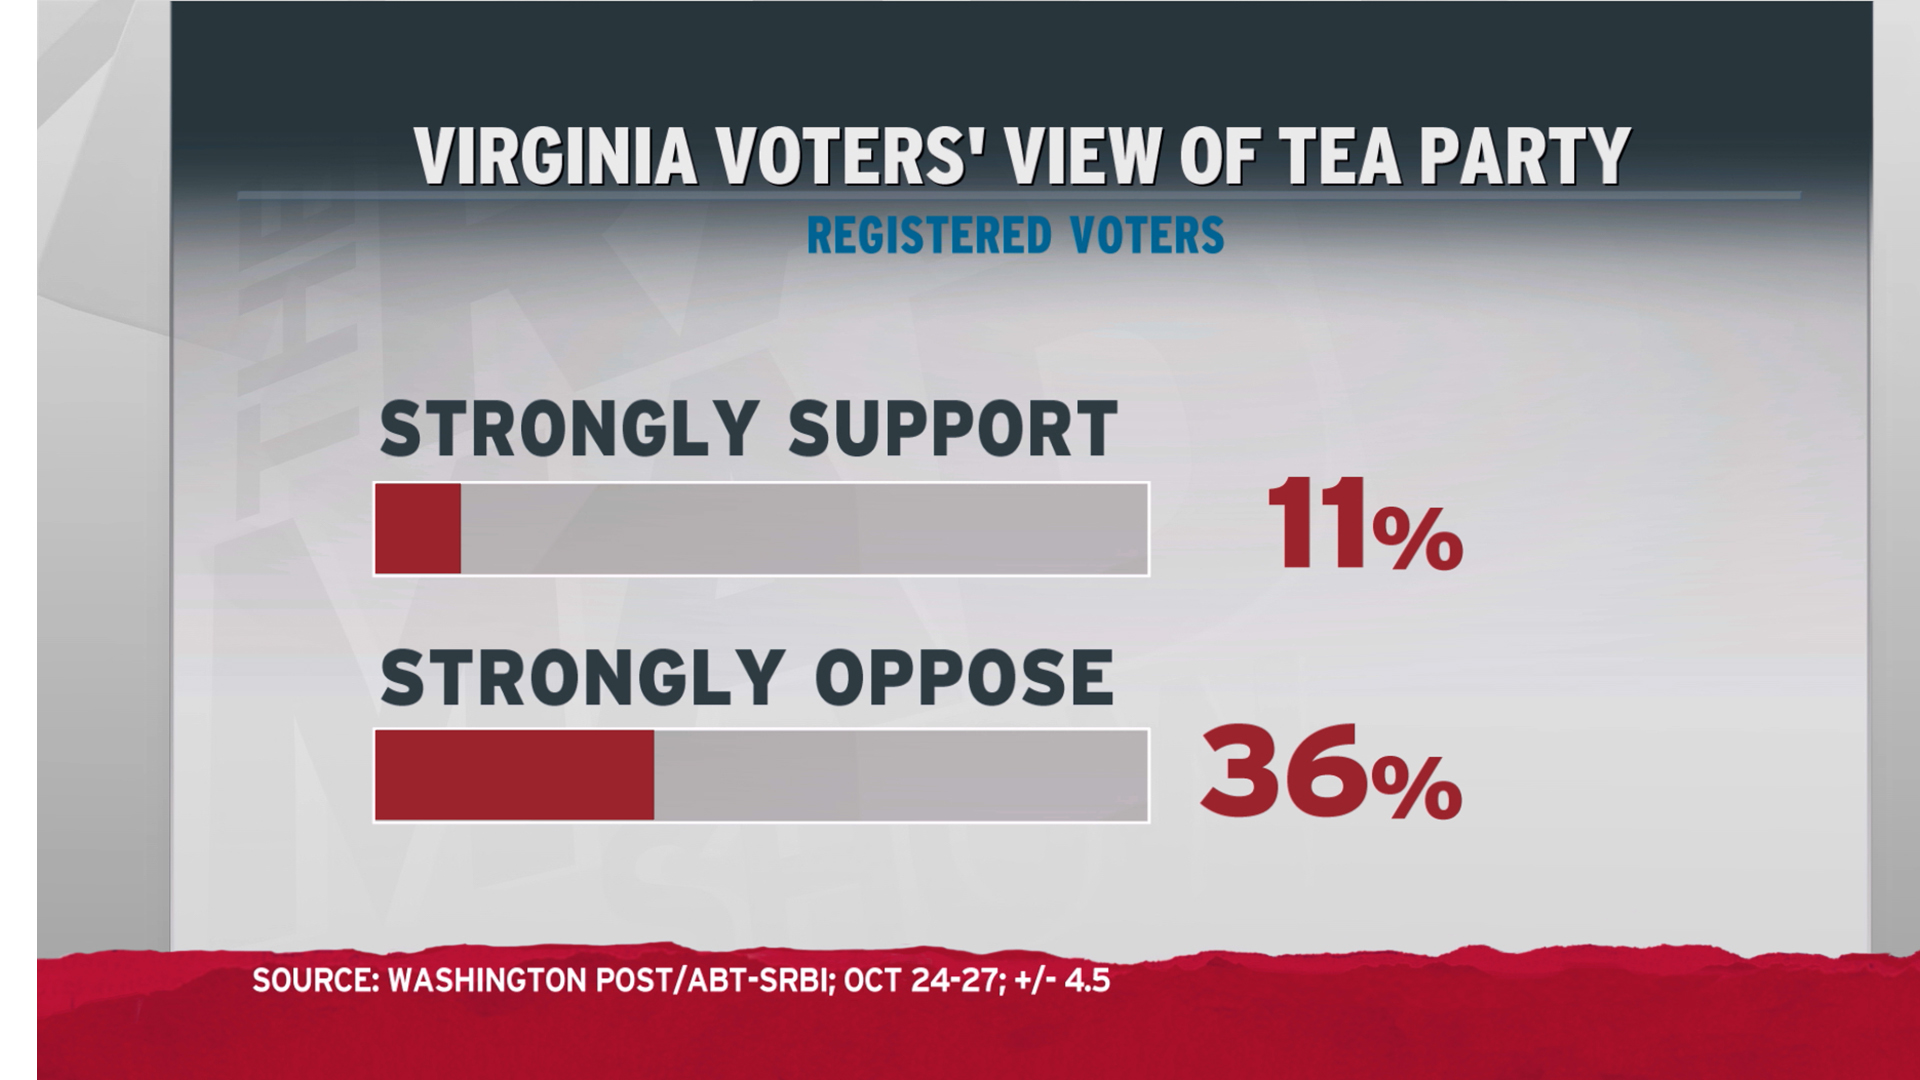 Bad time to be a tea party candidate in VA